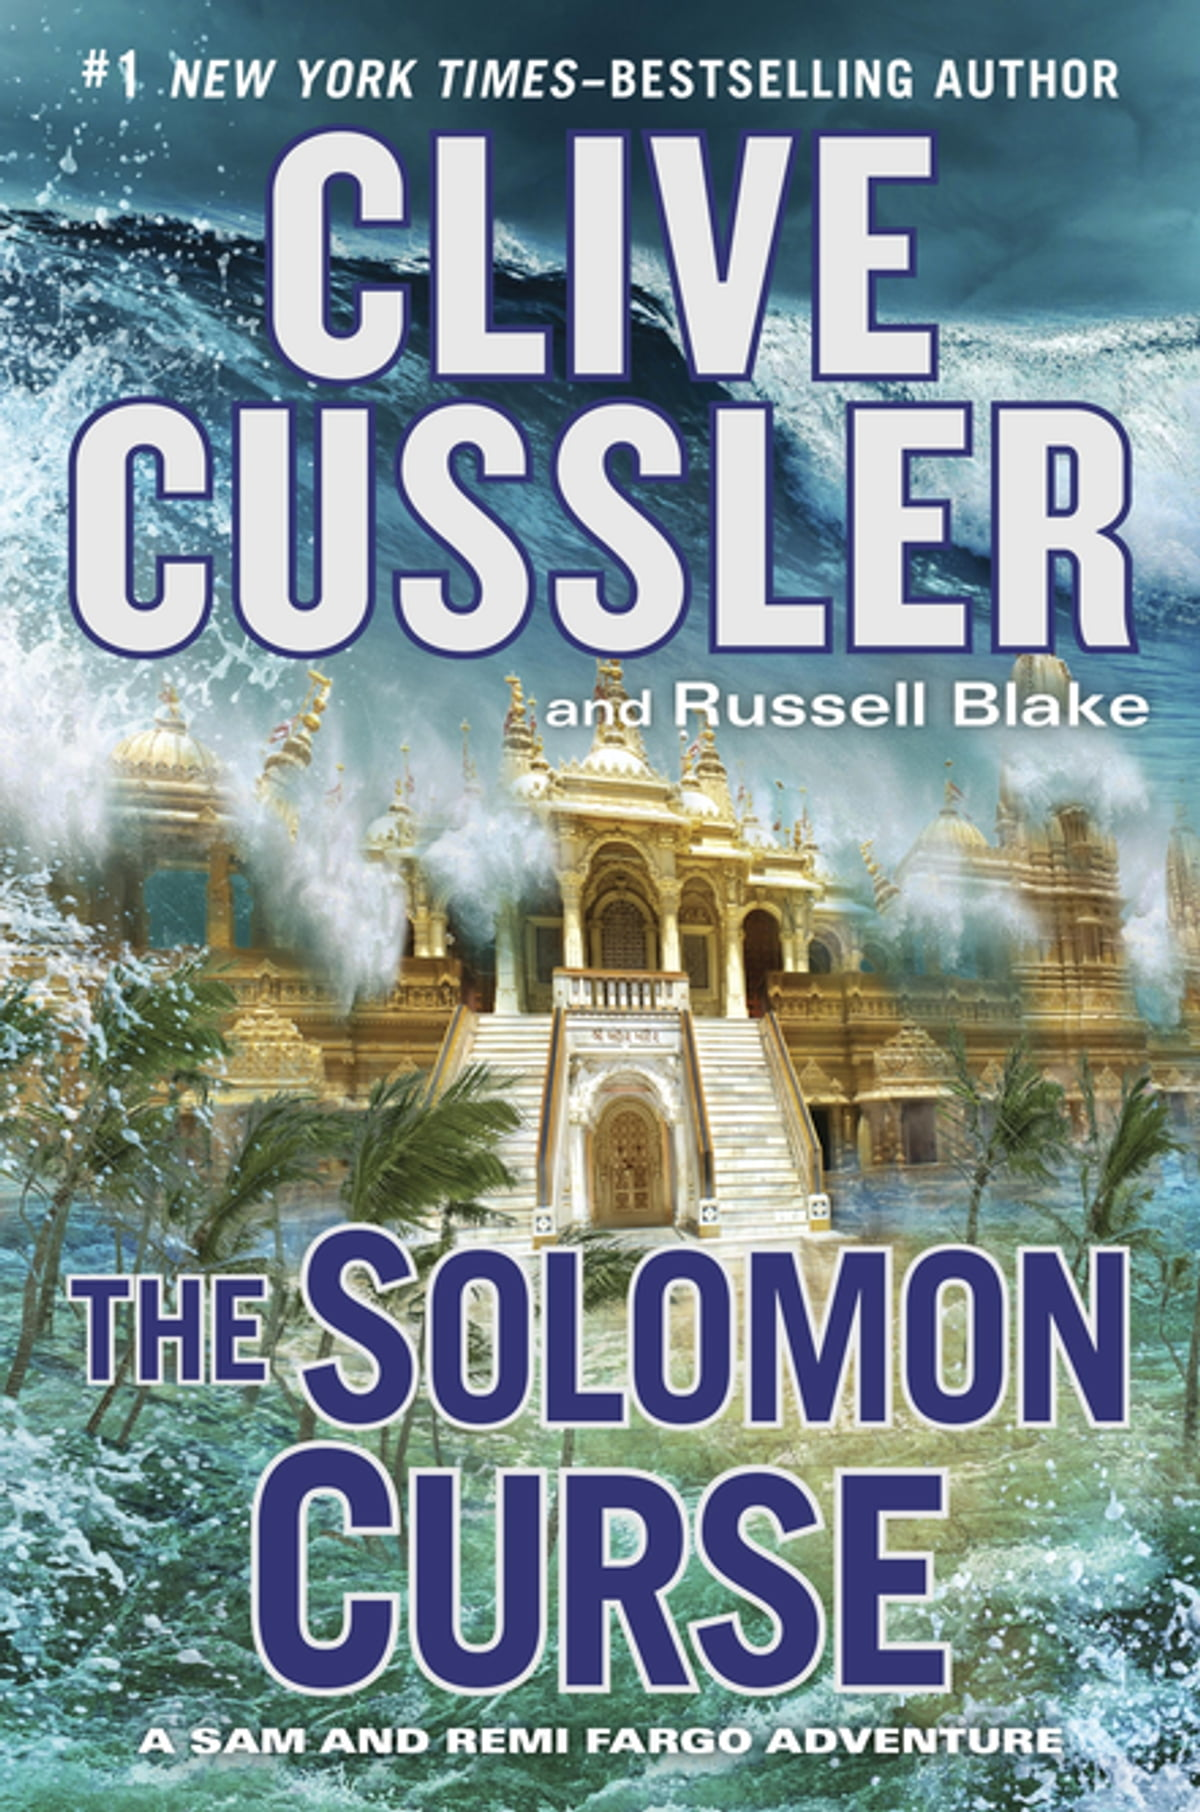 The Solomon Curse Ebook By Clive Cussler, Russell Blake